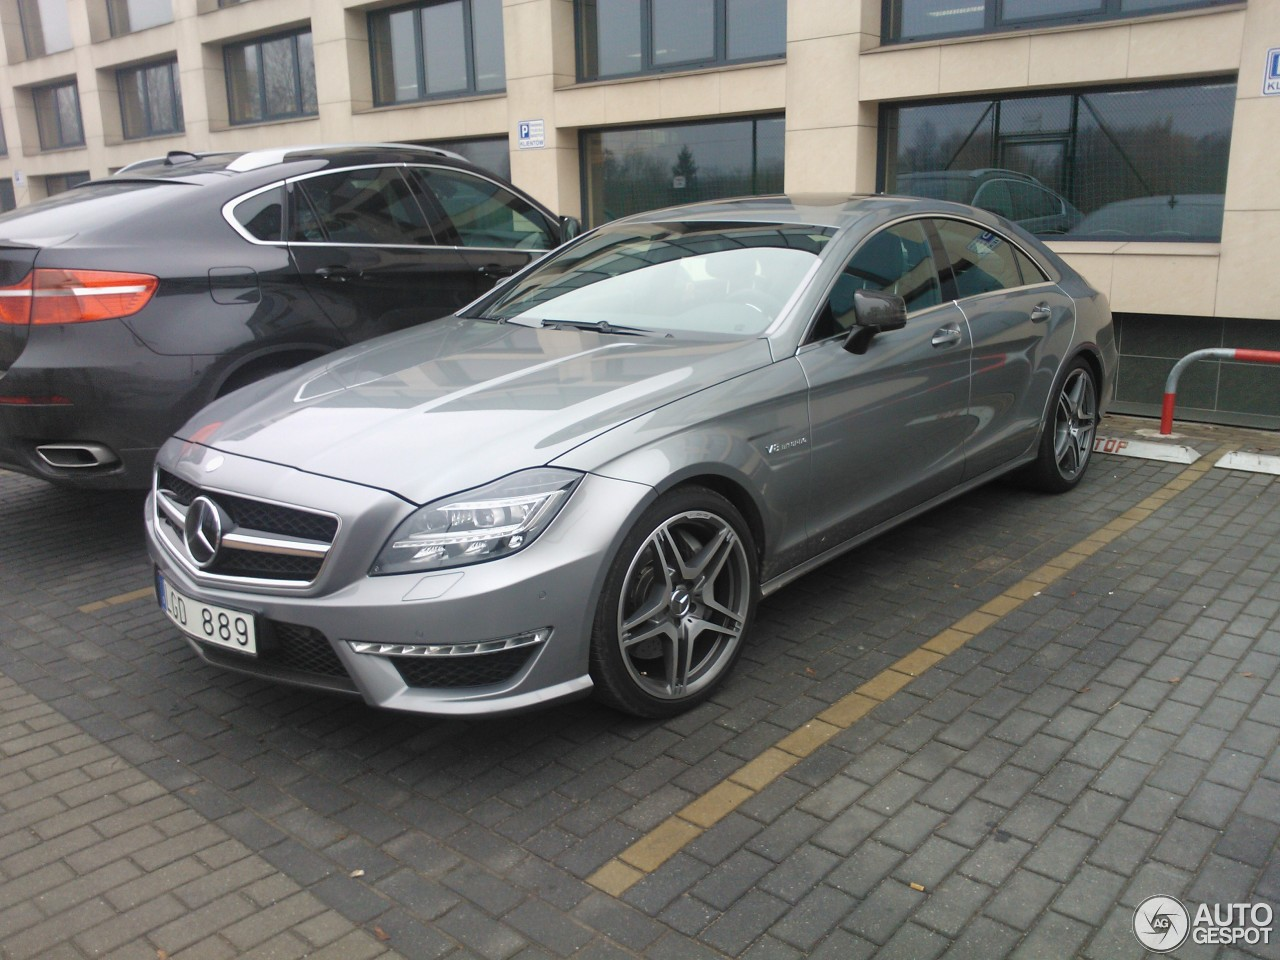 Mercedes benz cls 63 amg c218 19 november 2012 autogespot for Mercedes benz cls 2012 price